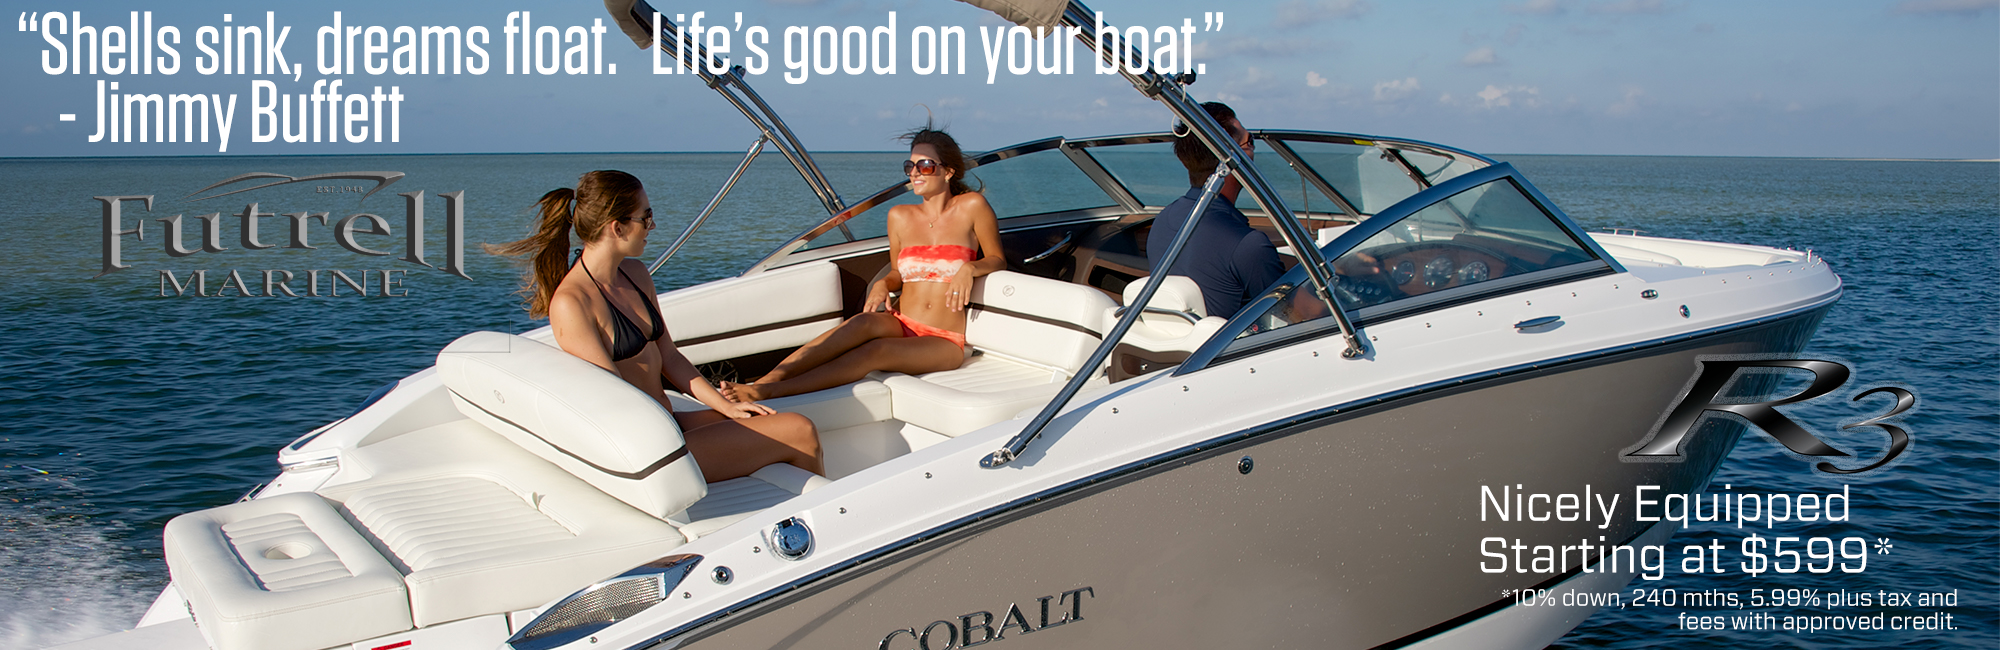 Shells sink, dreams float. Life's good on your boat.